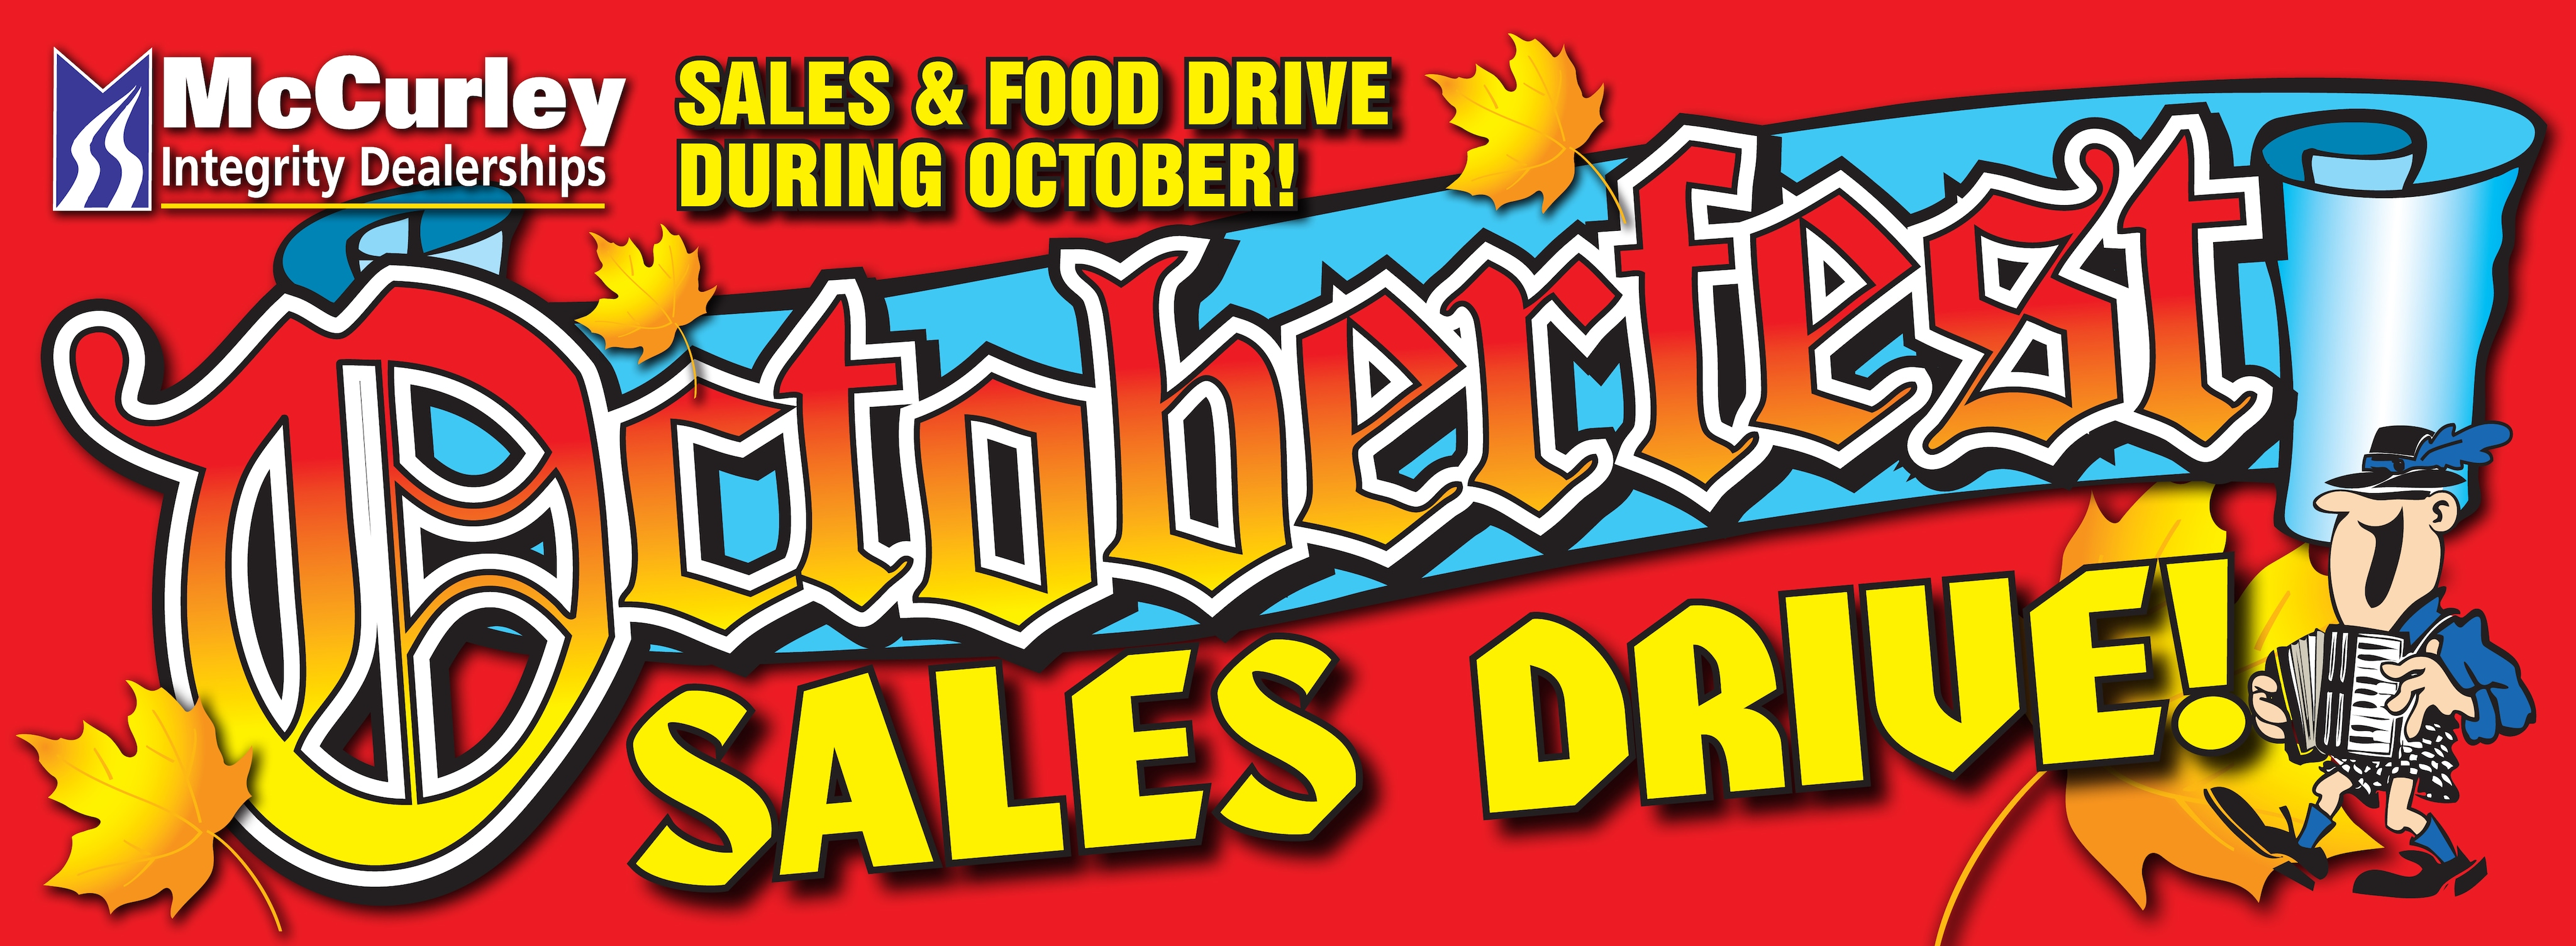 18th Annual Octoberfest Sales Drive | Mercedes-Benz of Tri ...